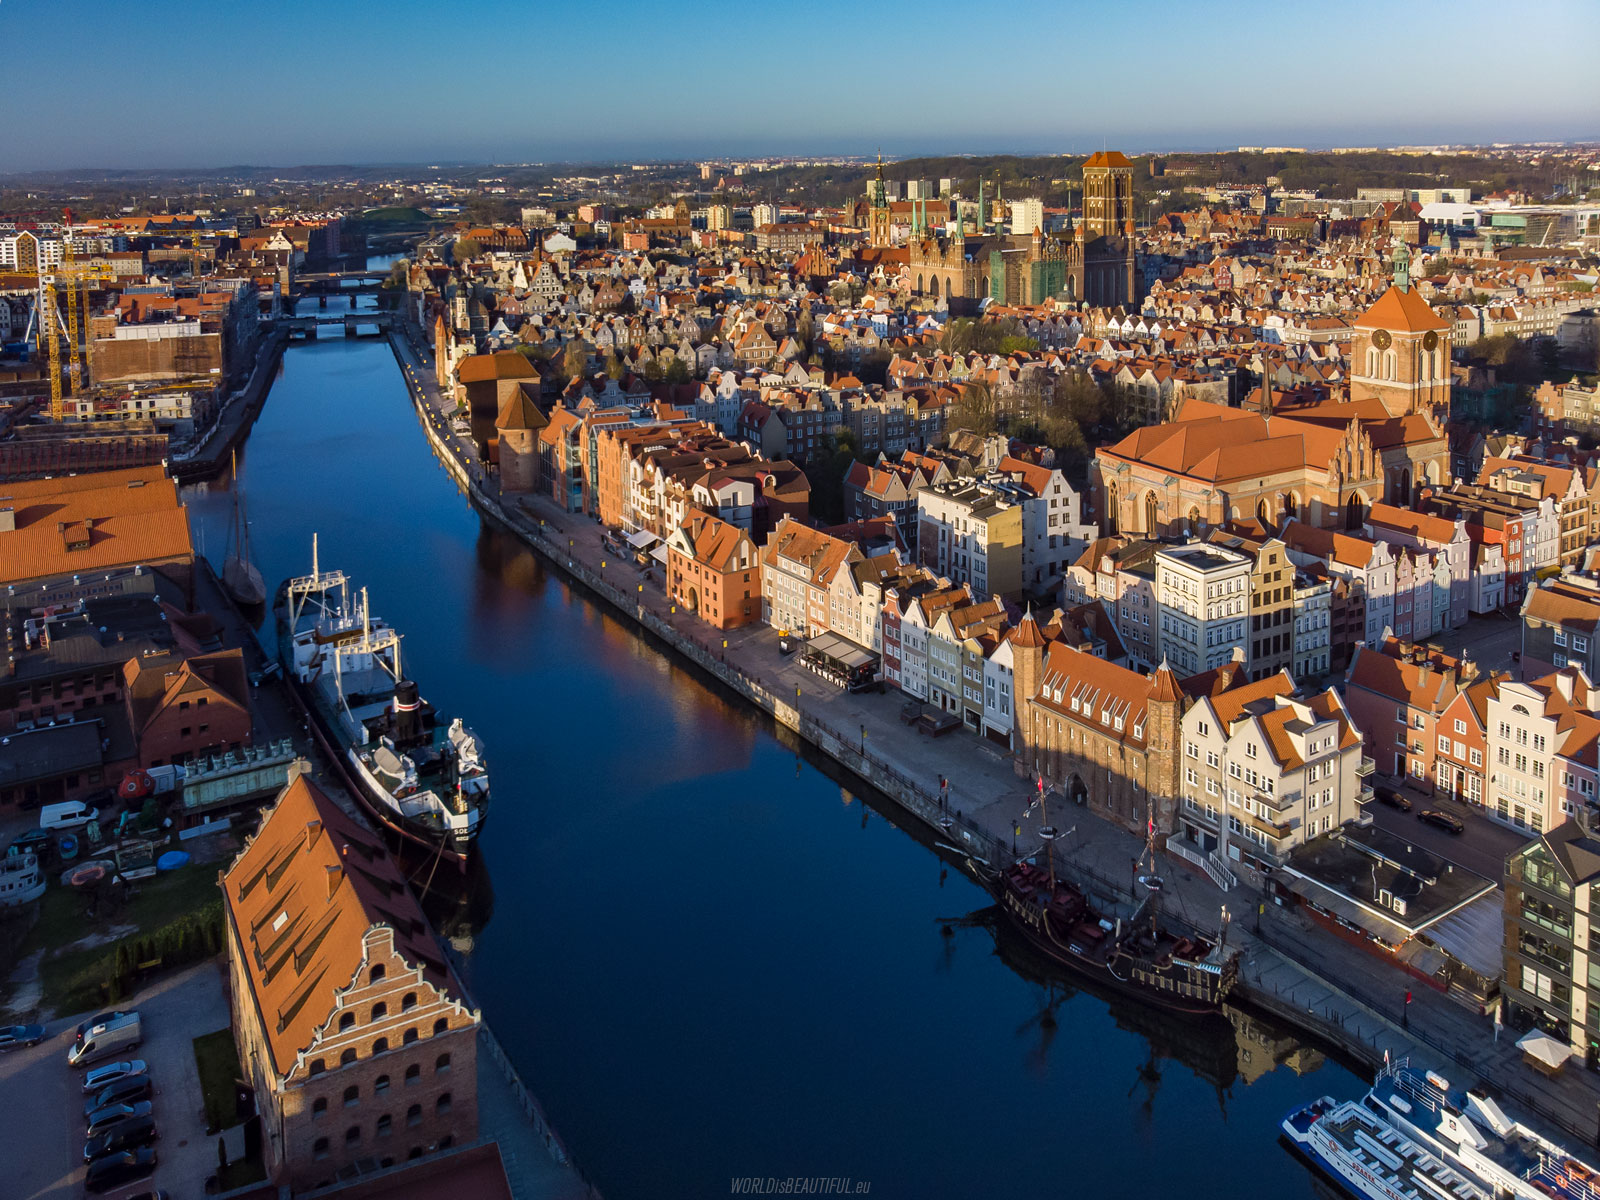 Gdansk from above